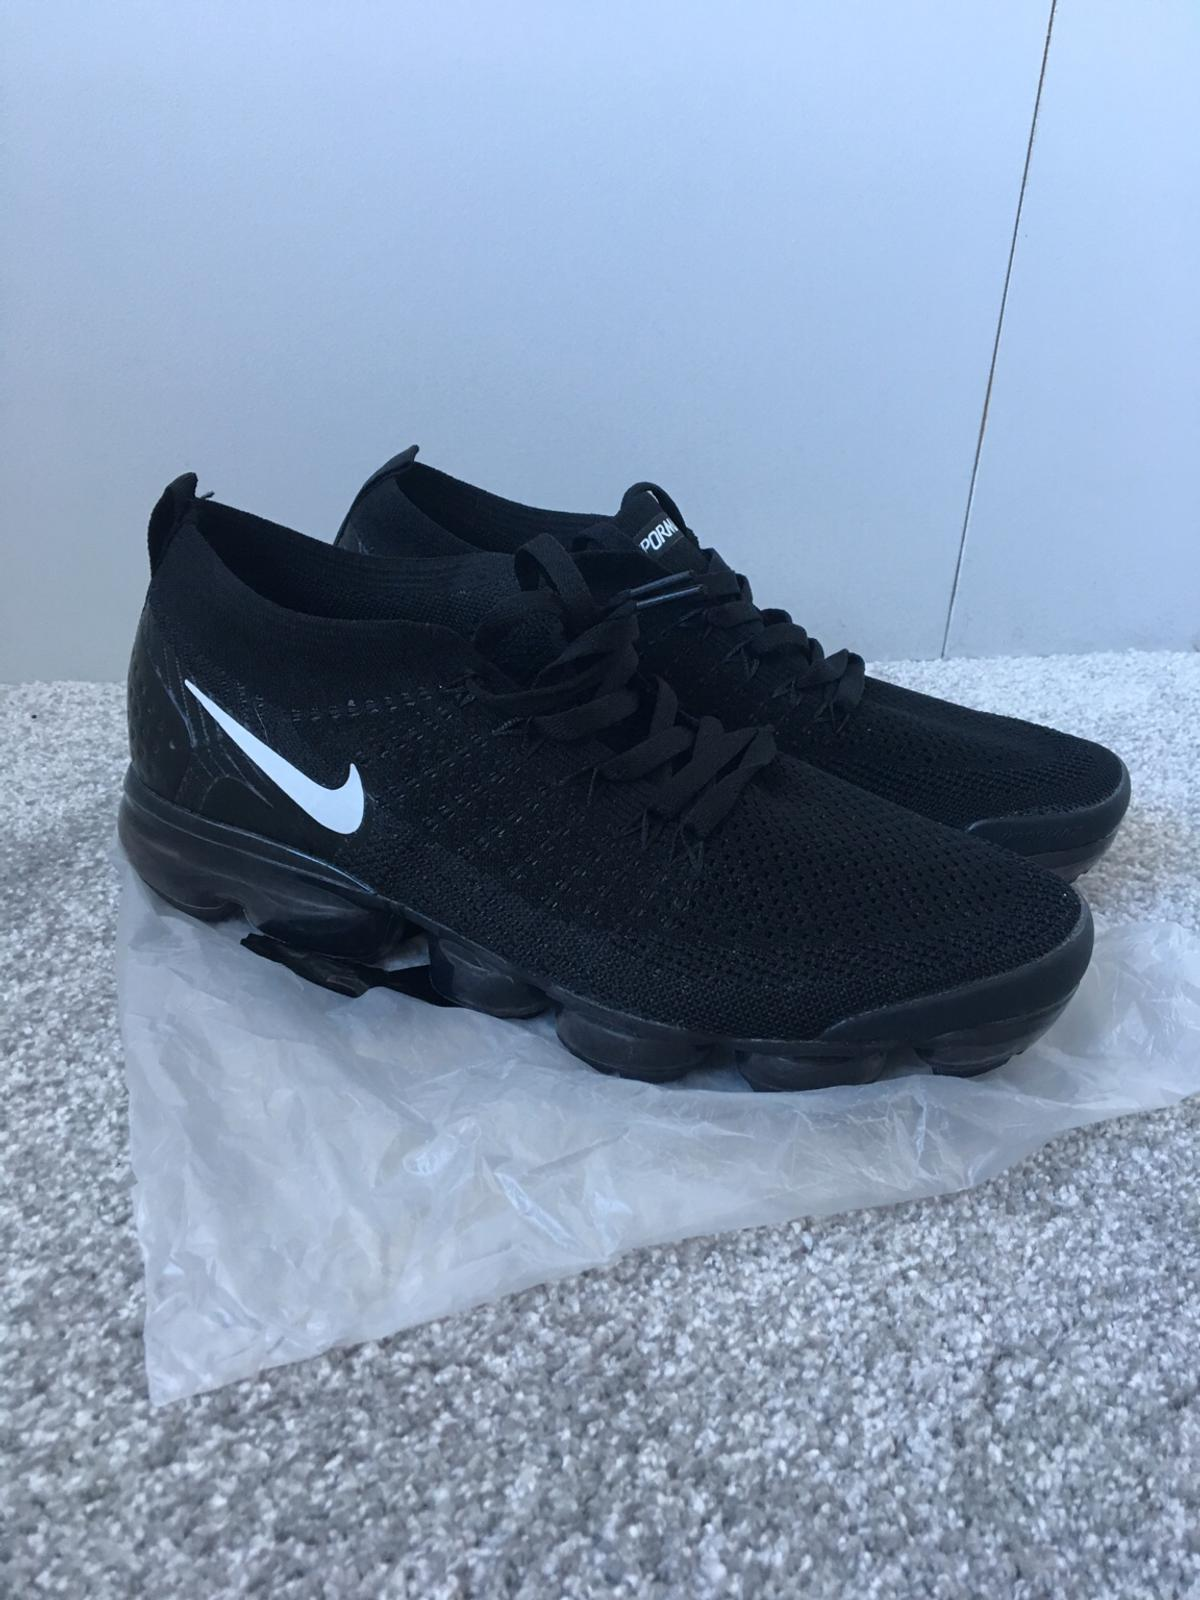 shop best sellers store undefeated x Nike Air Vapormax Flyknit UK Size 10 Brand Ne